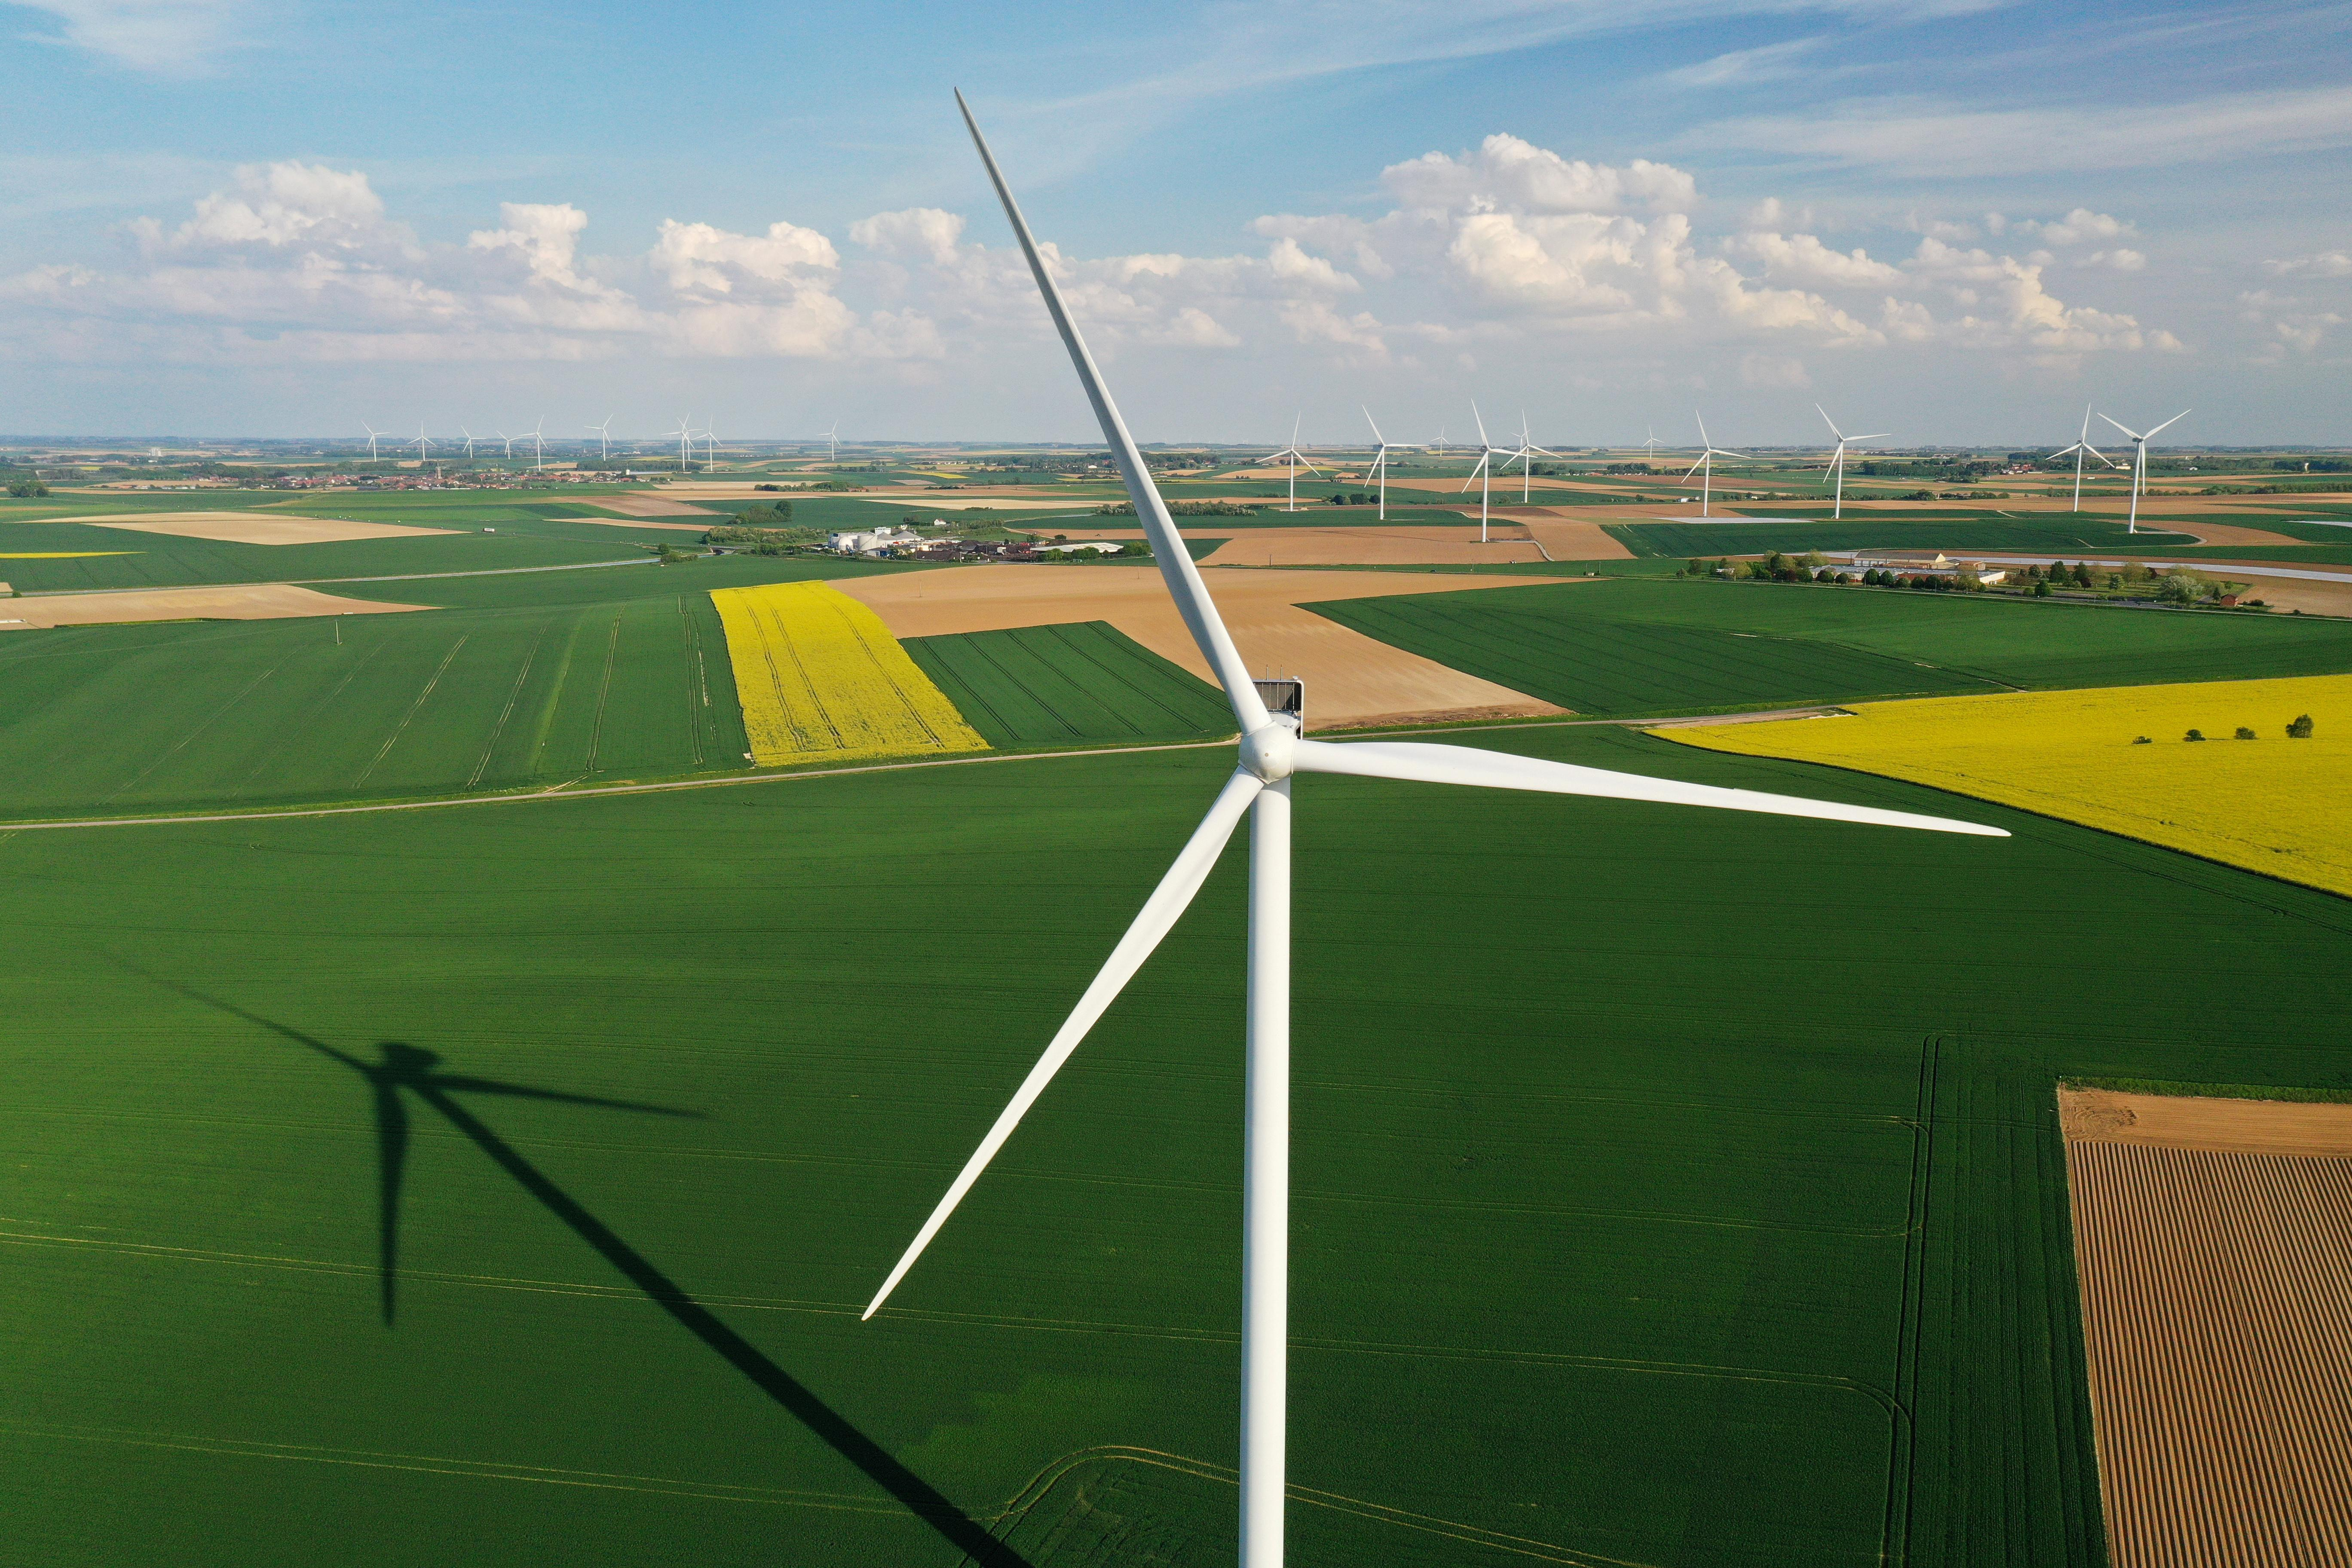 Global green energy growth to fall for first time in 20 years: IEA